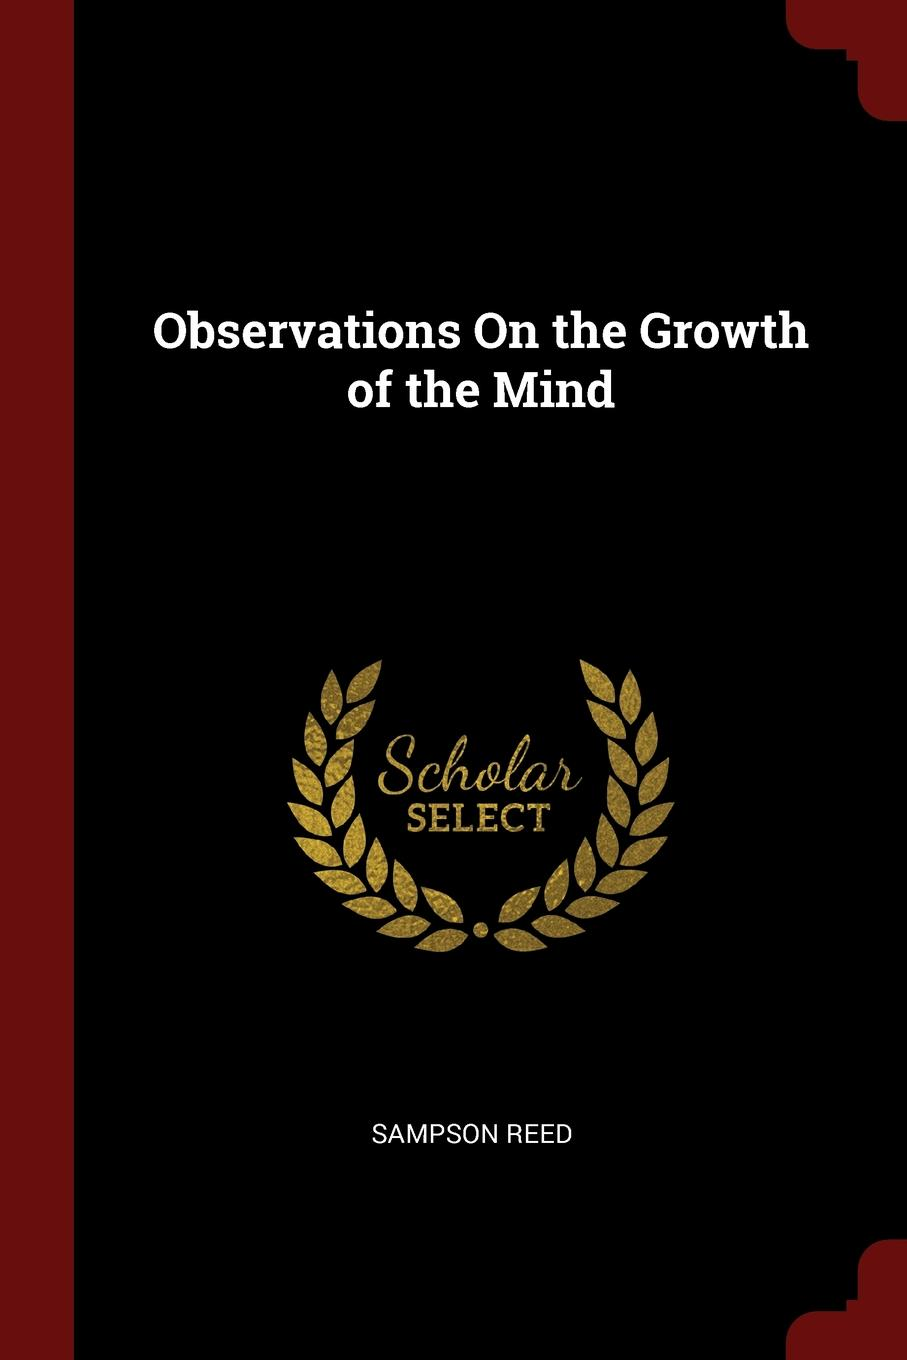 Sampson Reed Observations On the Growth of the Mind sampson reed observations on the growth of the mind